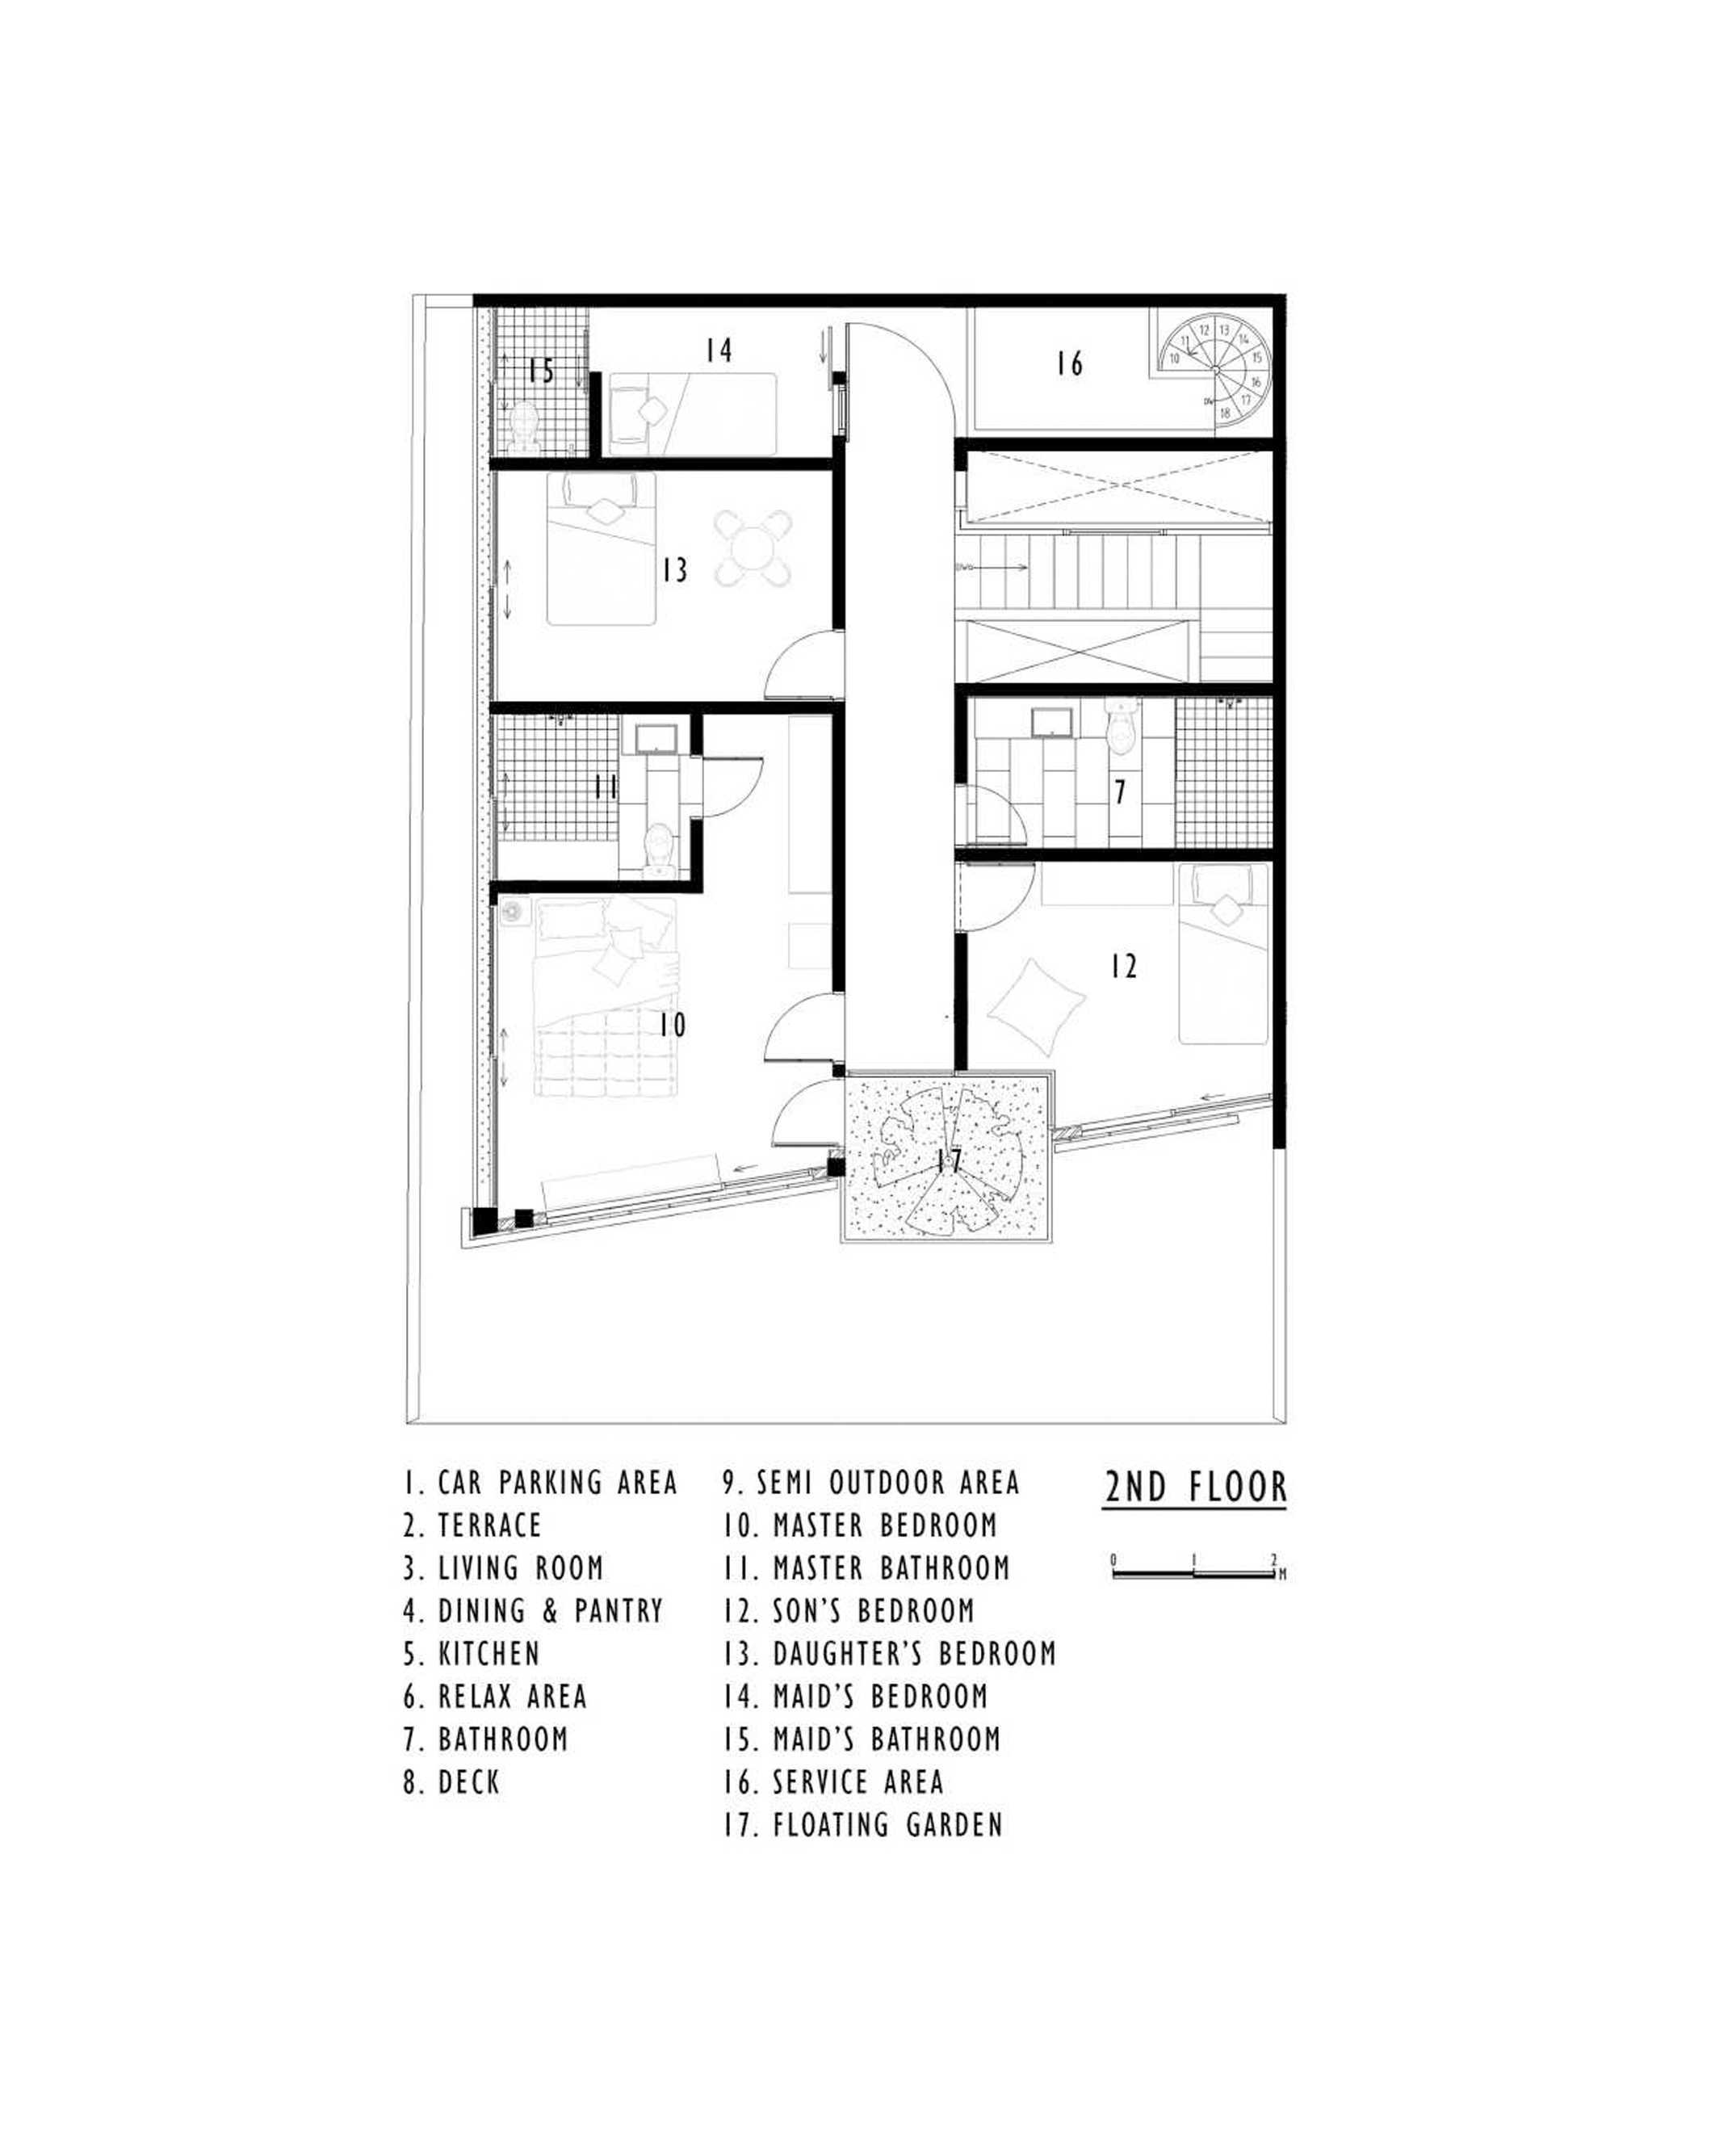 Delution Inset House Jatibening, Pondokgede, Bekasi City, West Java, Indonesia Jatibening, Pondokgede, Bekasi City, West Java, Indonesia Floorplan Kontemporer  36835